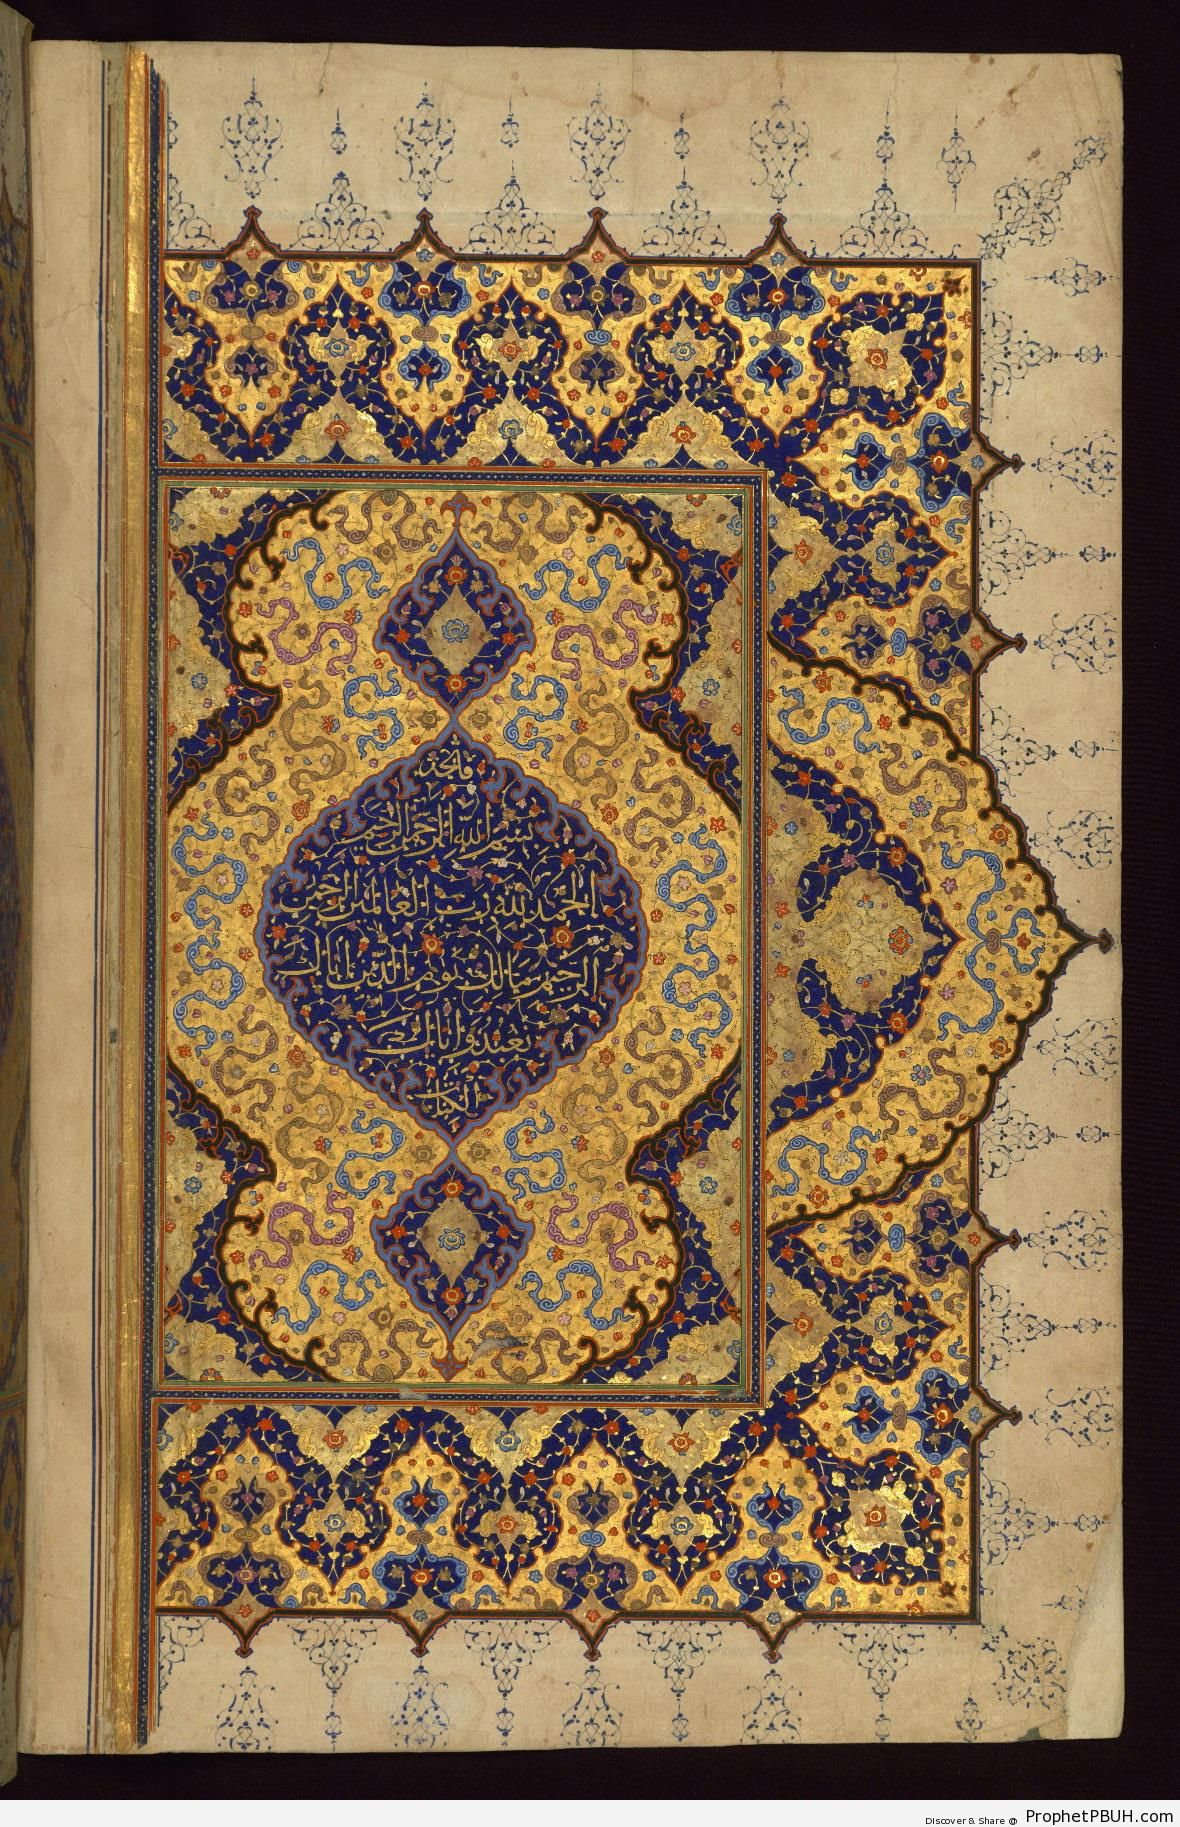 Surat al-Fatihah on 11th Century Illuminated Quran Manuscript - Islamic Calligraphy and Typography